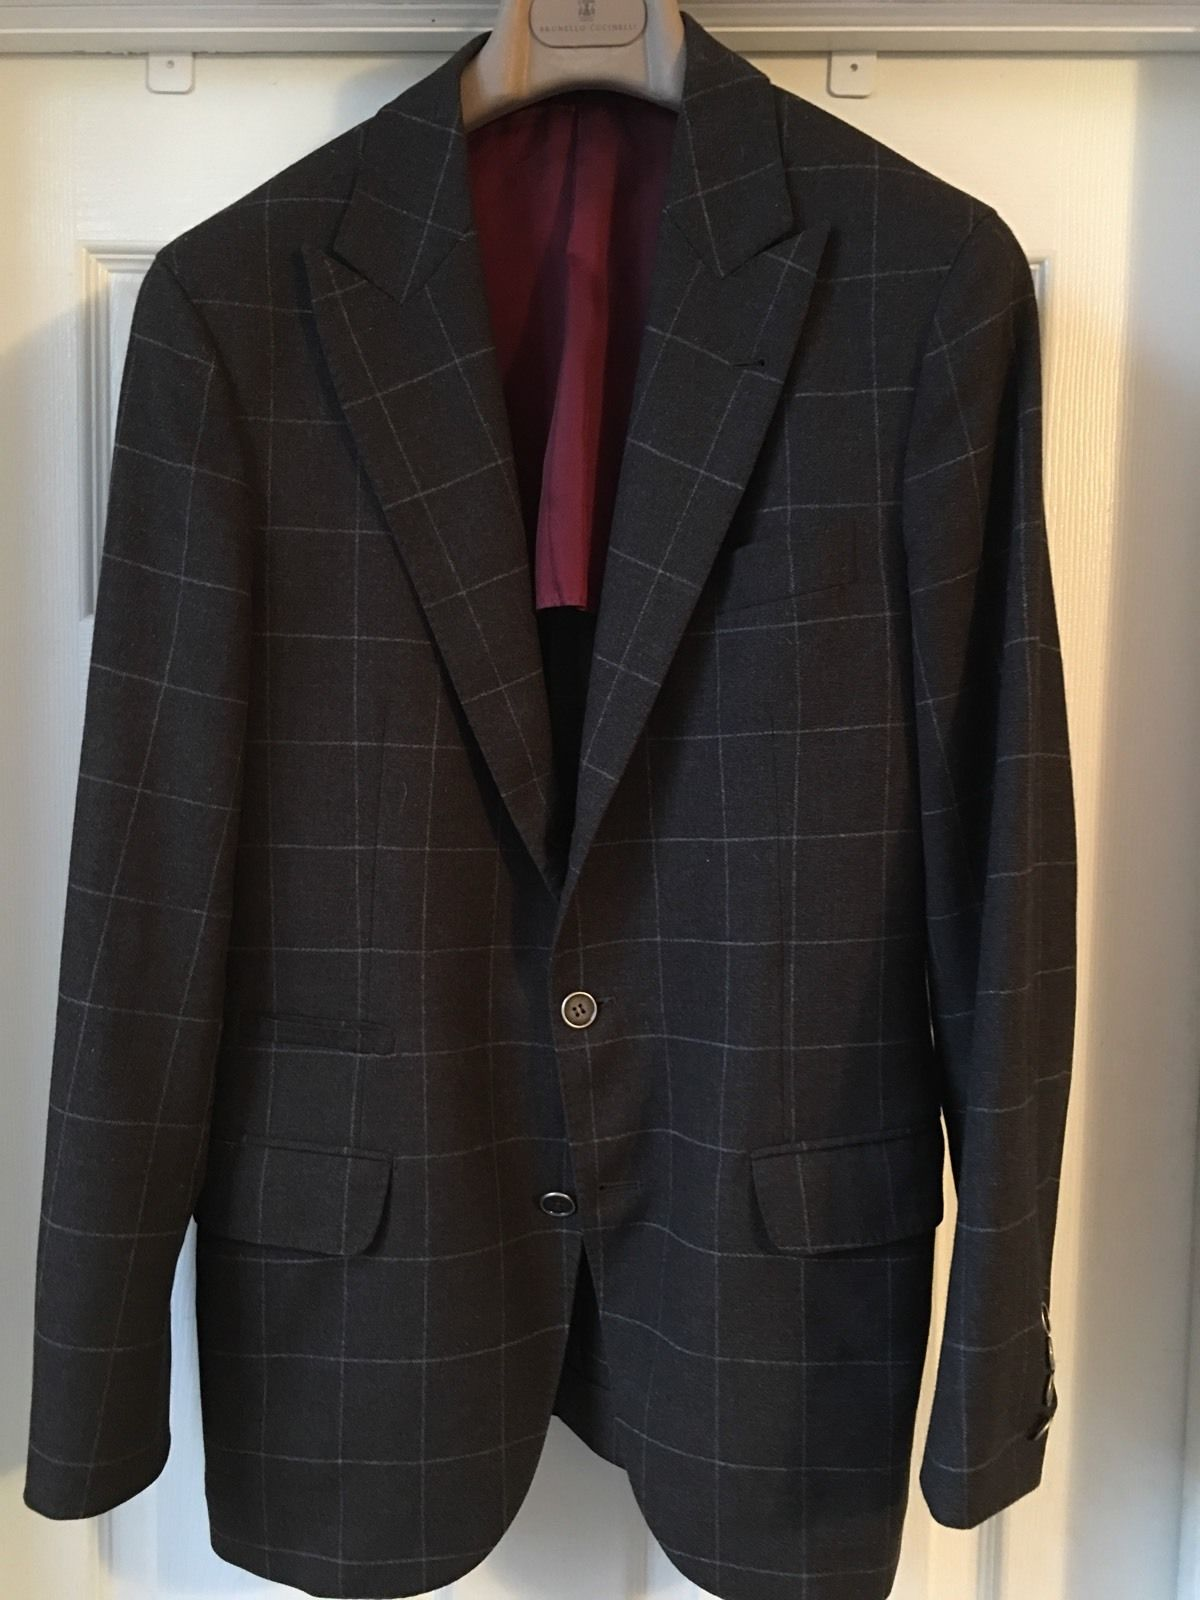 grujaz10's photos in Amazing Brunello Cucinelli Jackets/Sport Coats